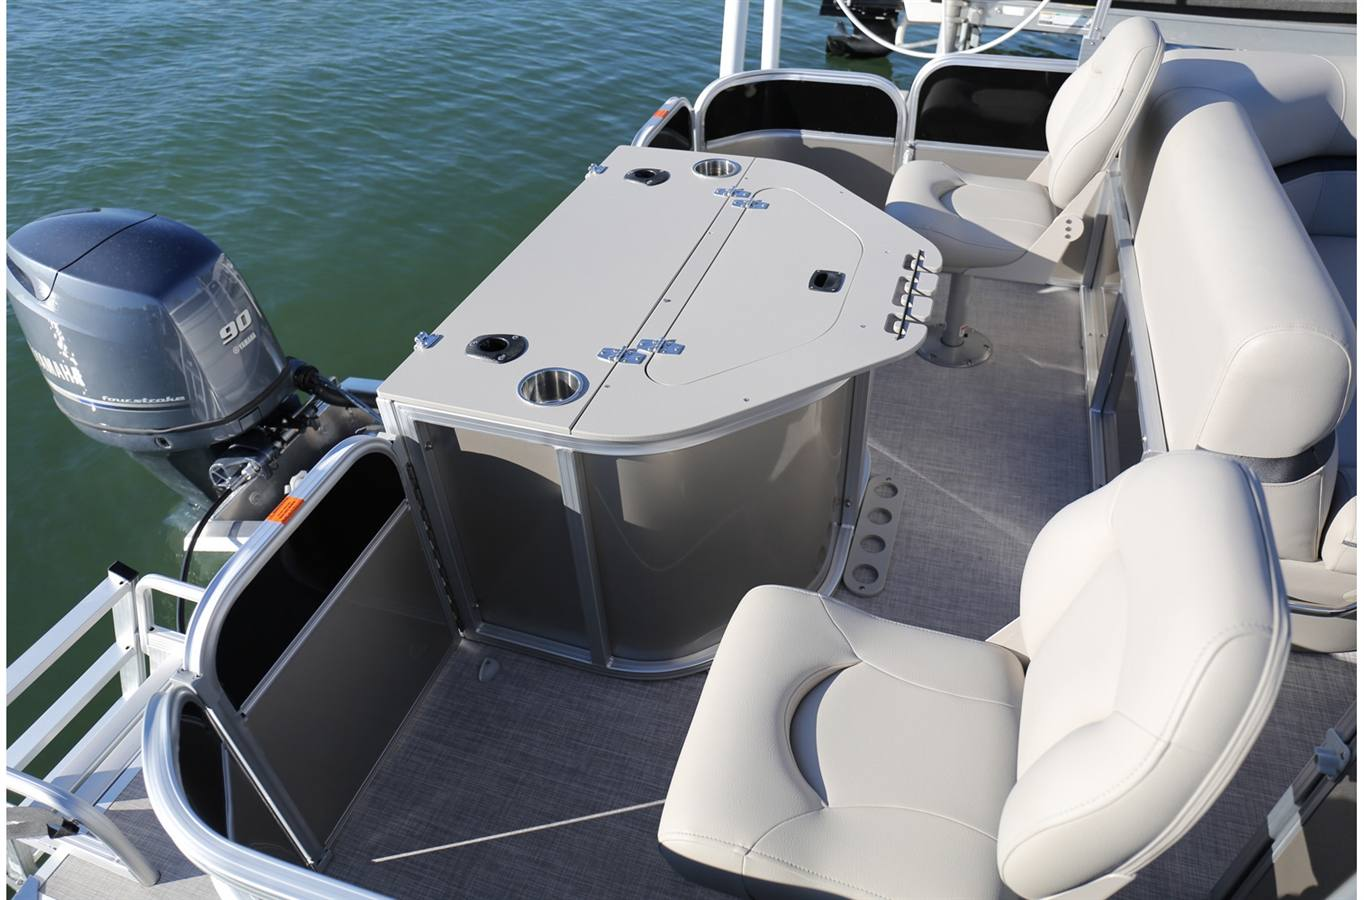 2018 south bay 200 series 224fcr 2 75 for sale in worcester, ma usa Bayliner Wiring Diagram